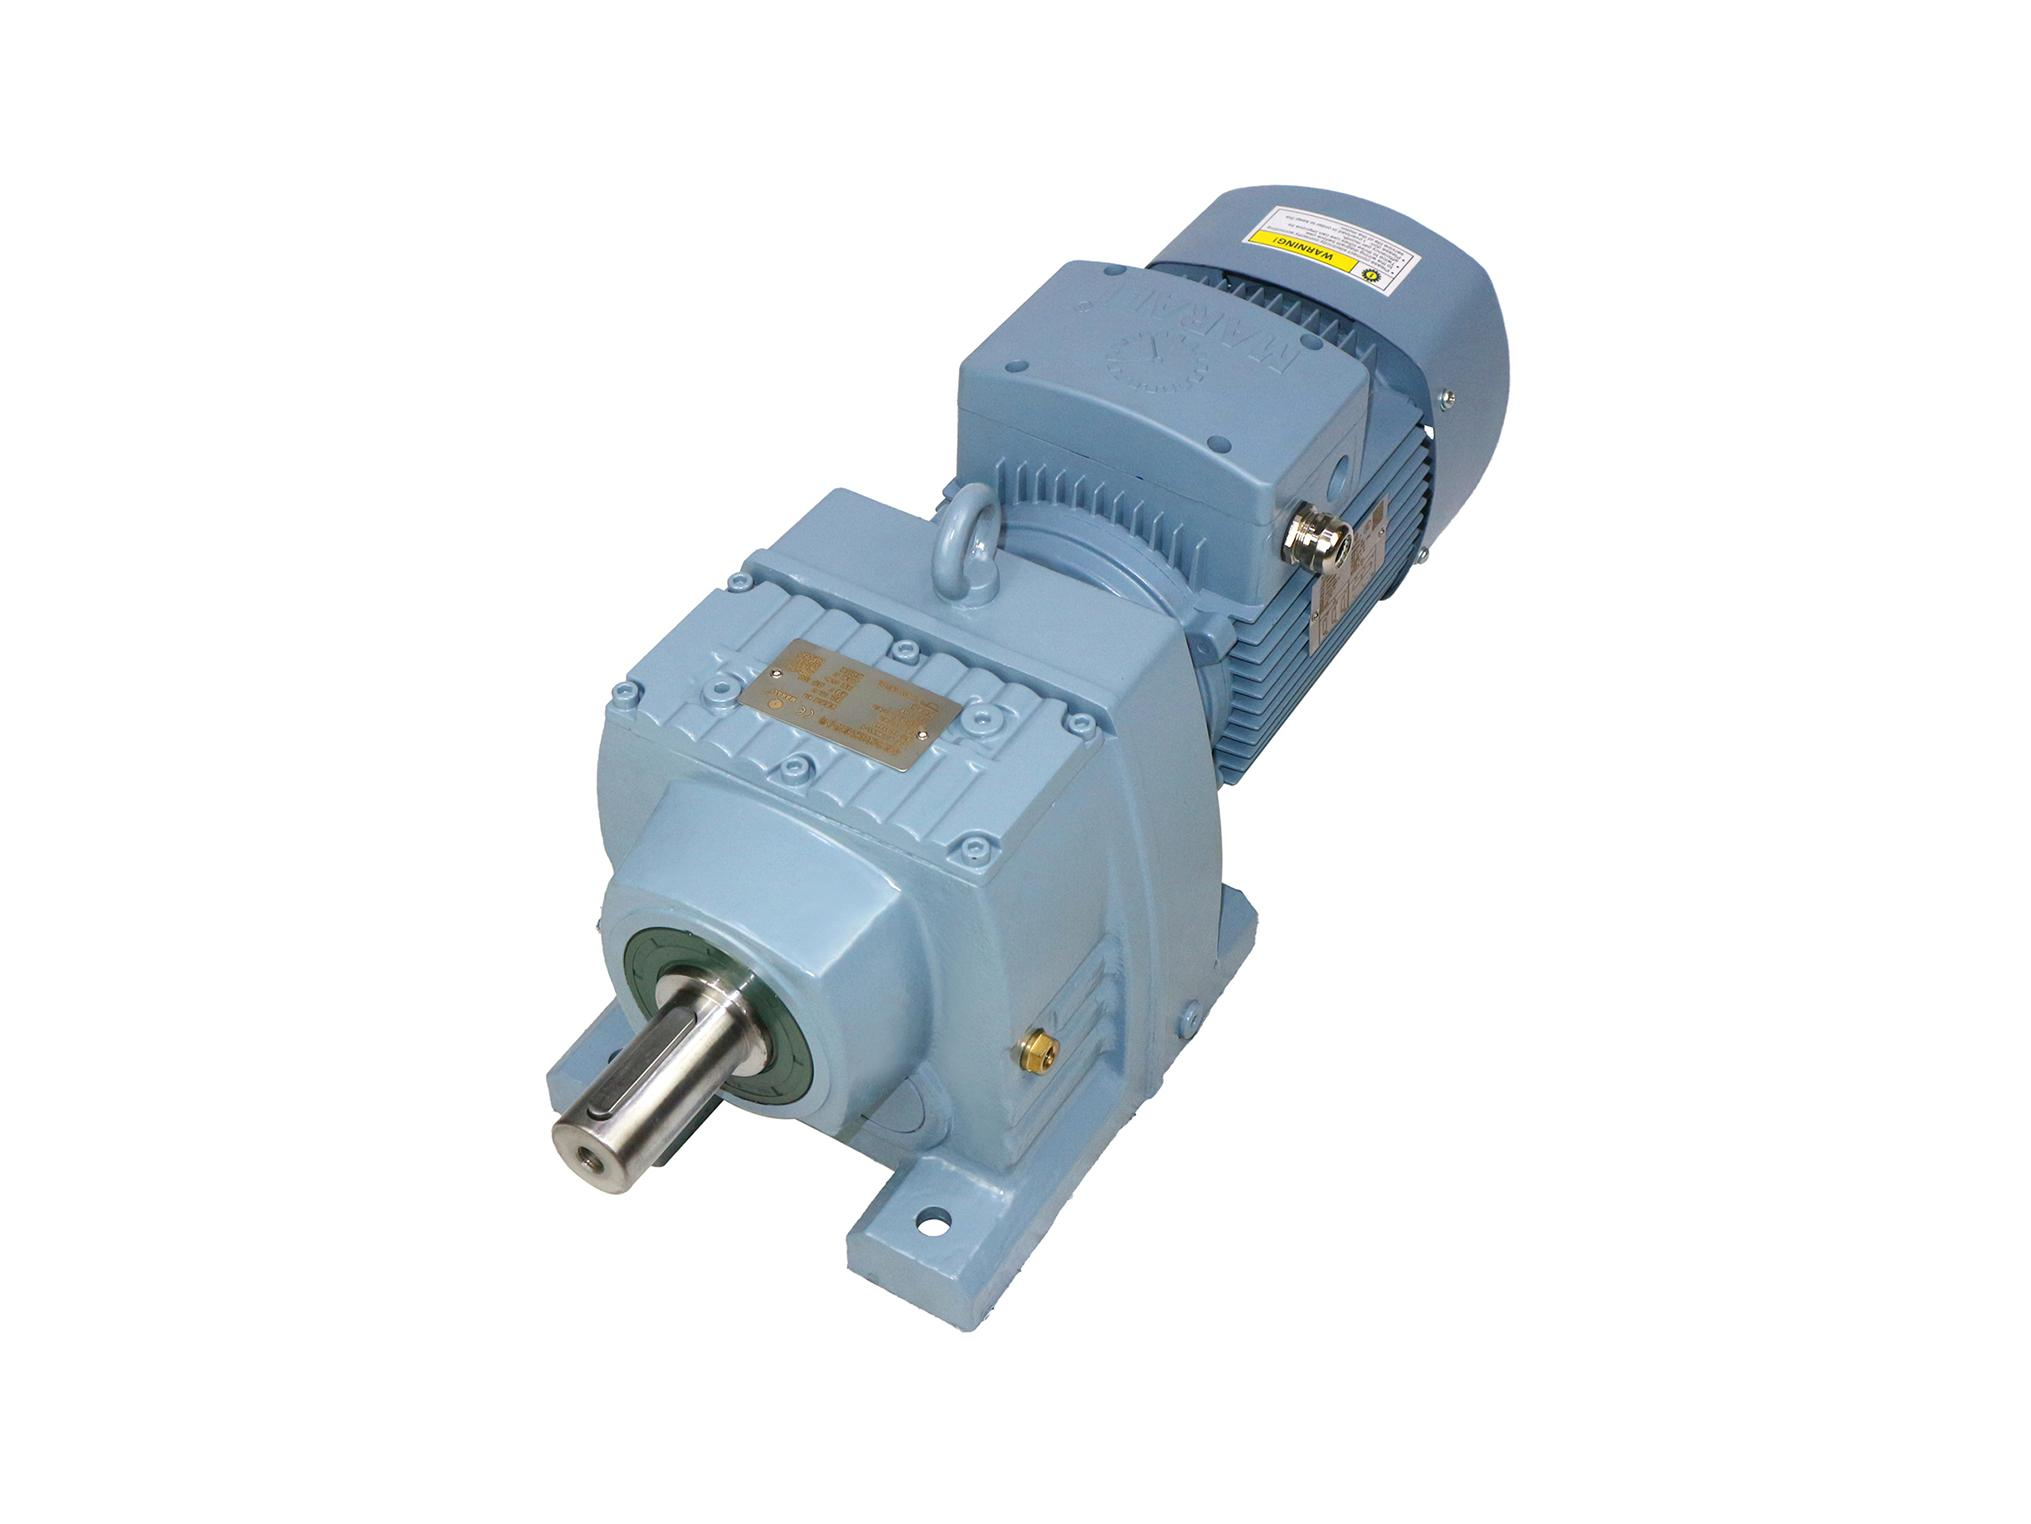 MR series helical bevel gear hard tooth surface reducer